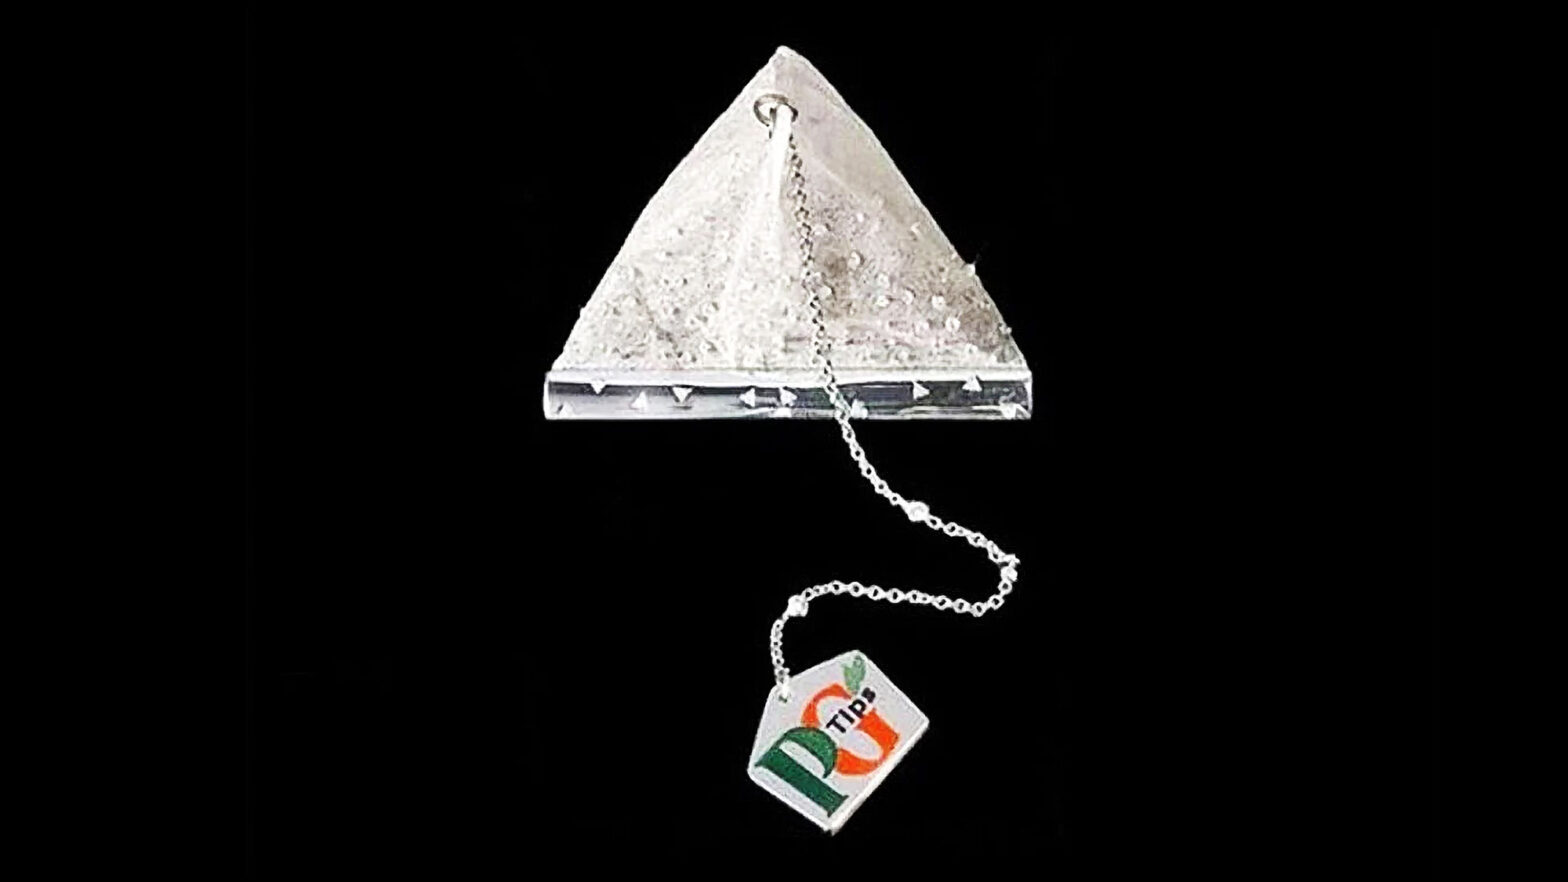 PG Tips Tea Leaves in Diamond-studded Teabag